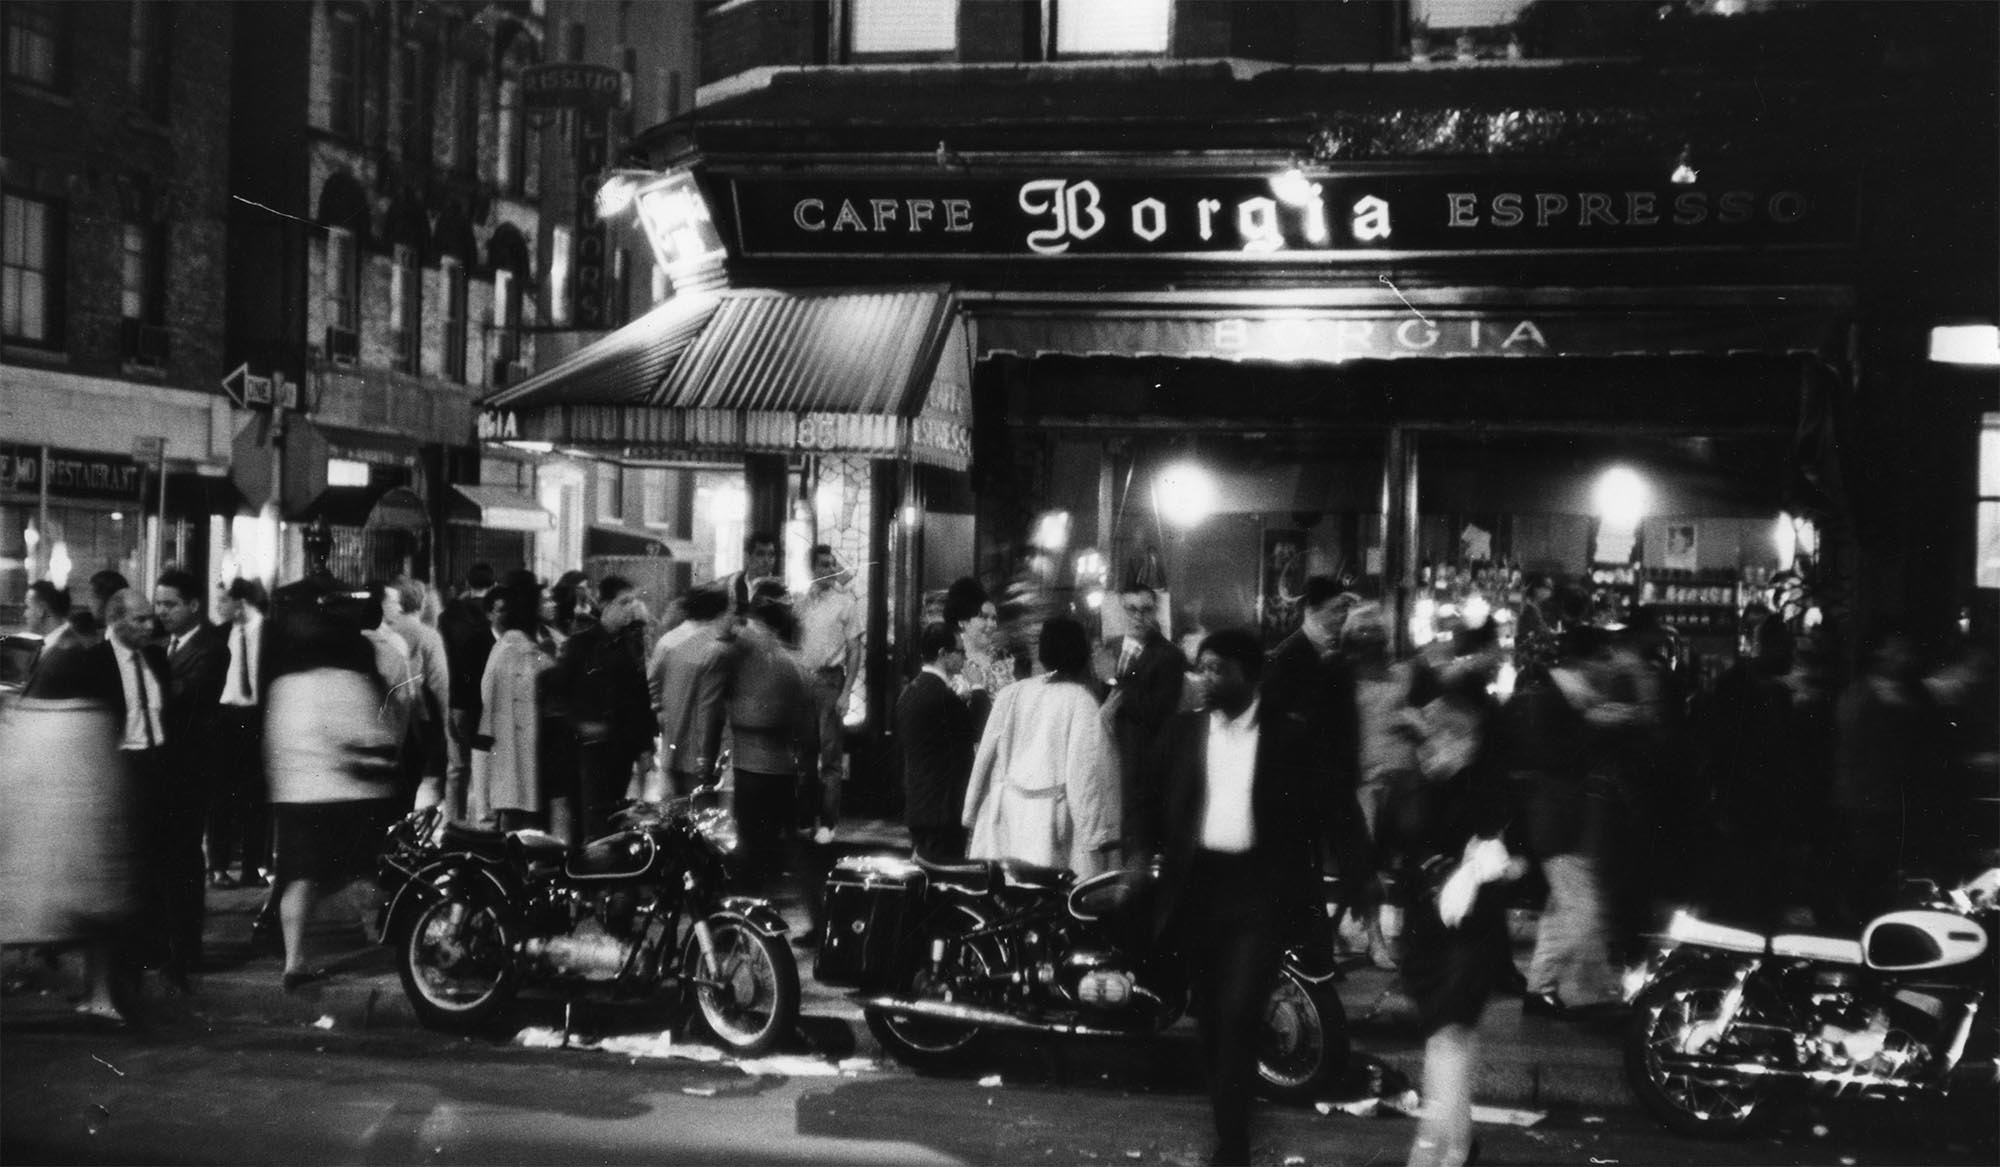 Outside the Caffe Borgia, at MacDougal and Bleecker Sts., 1966